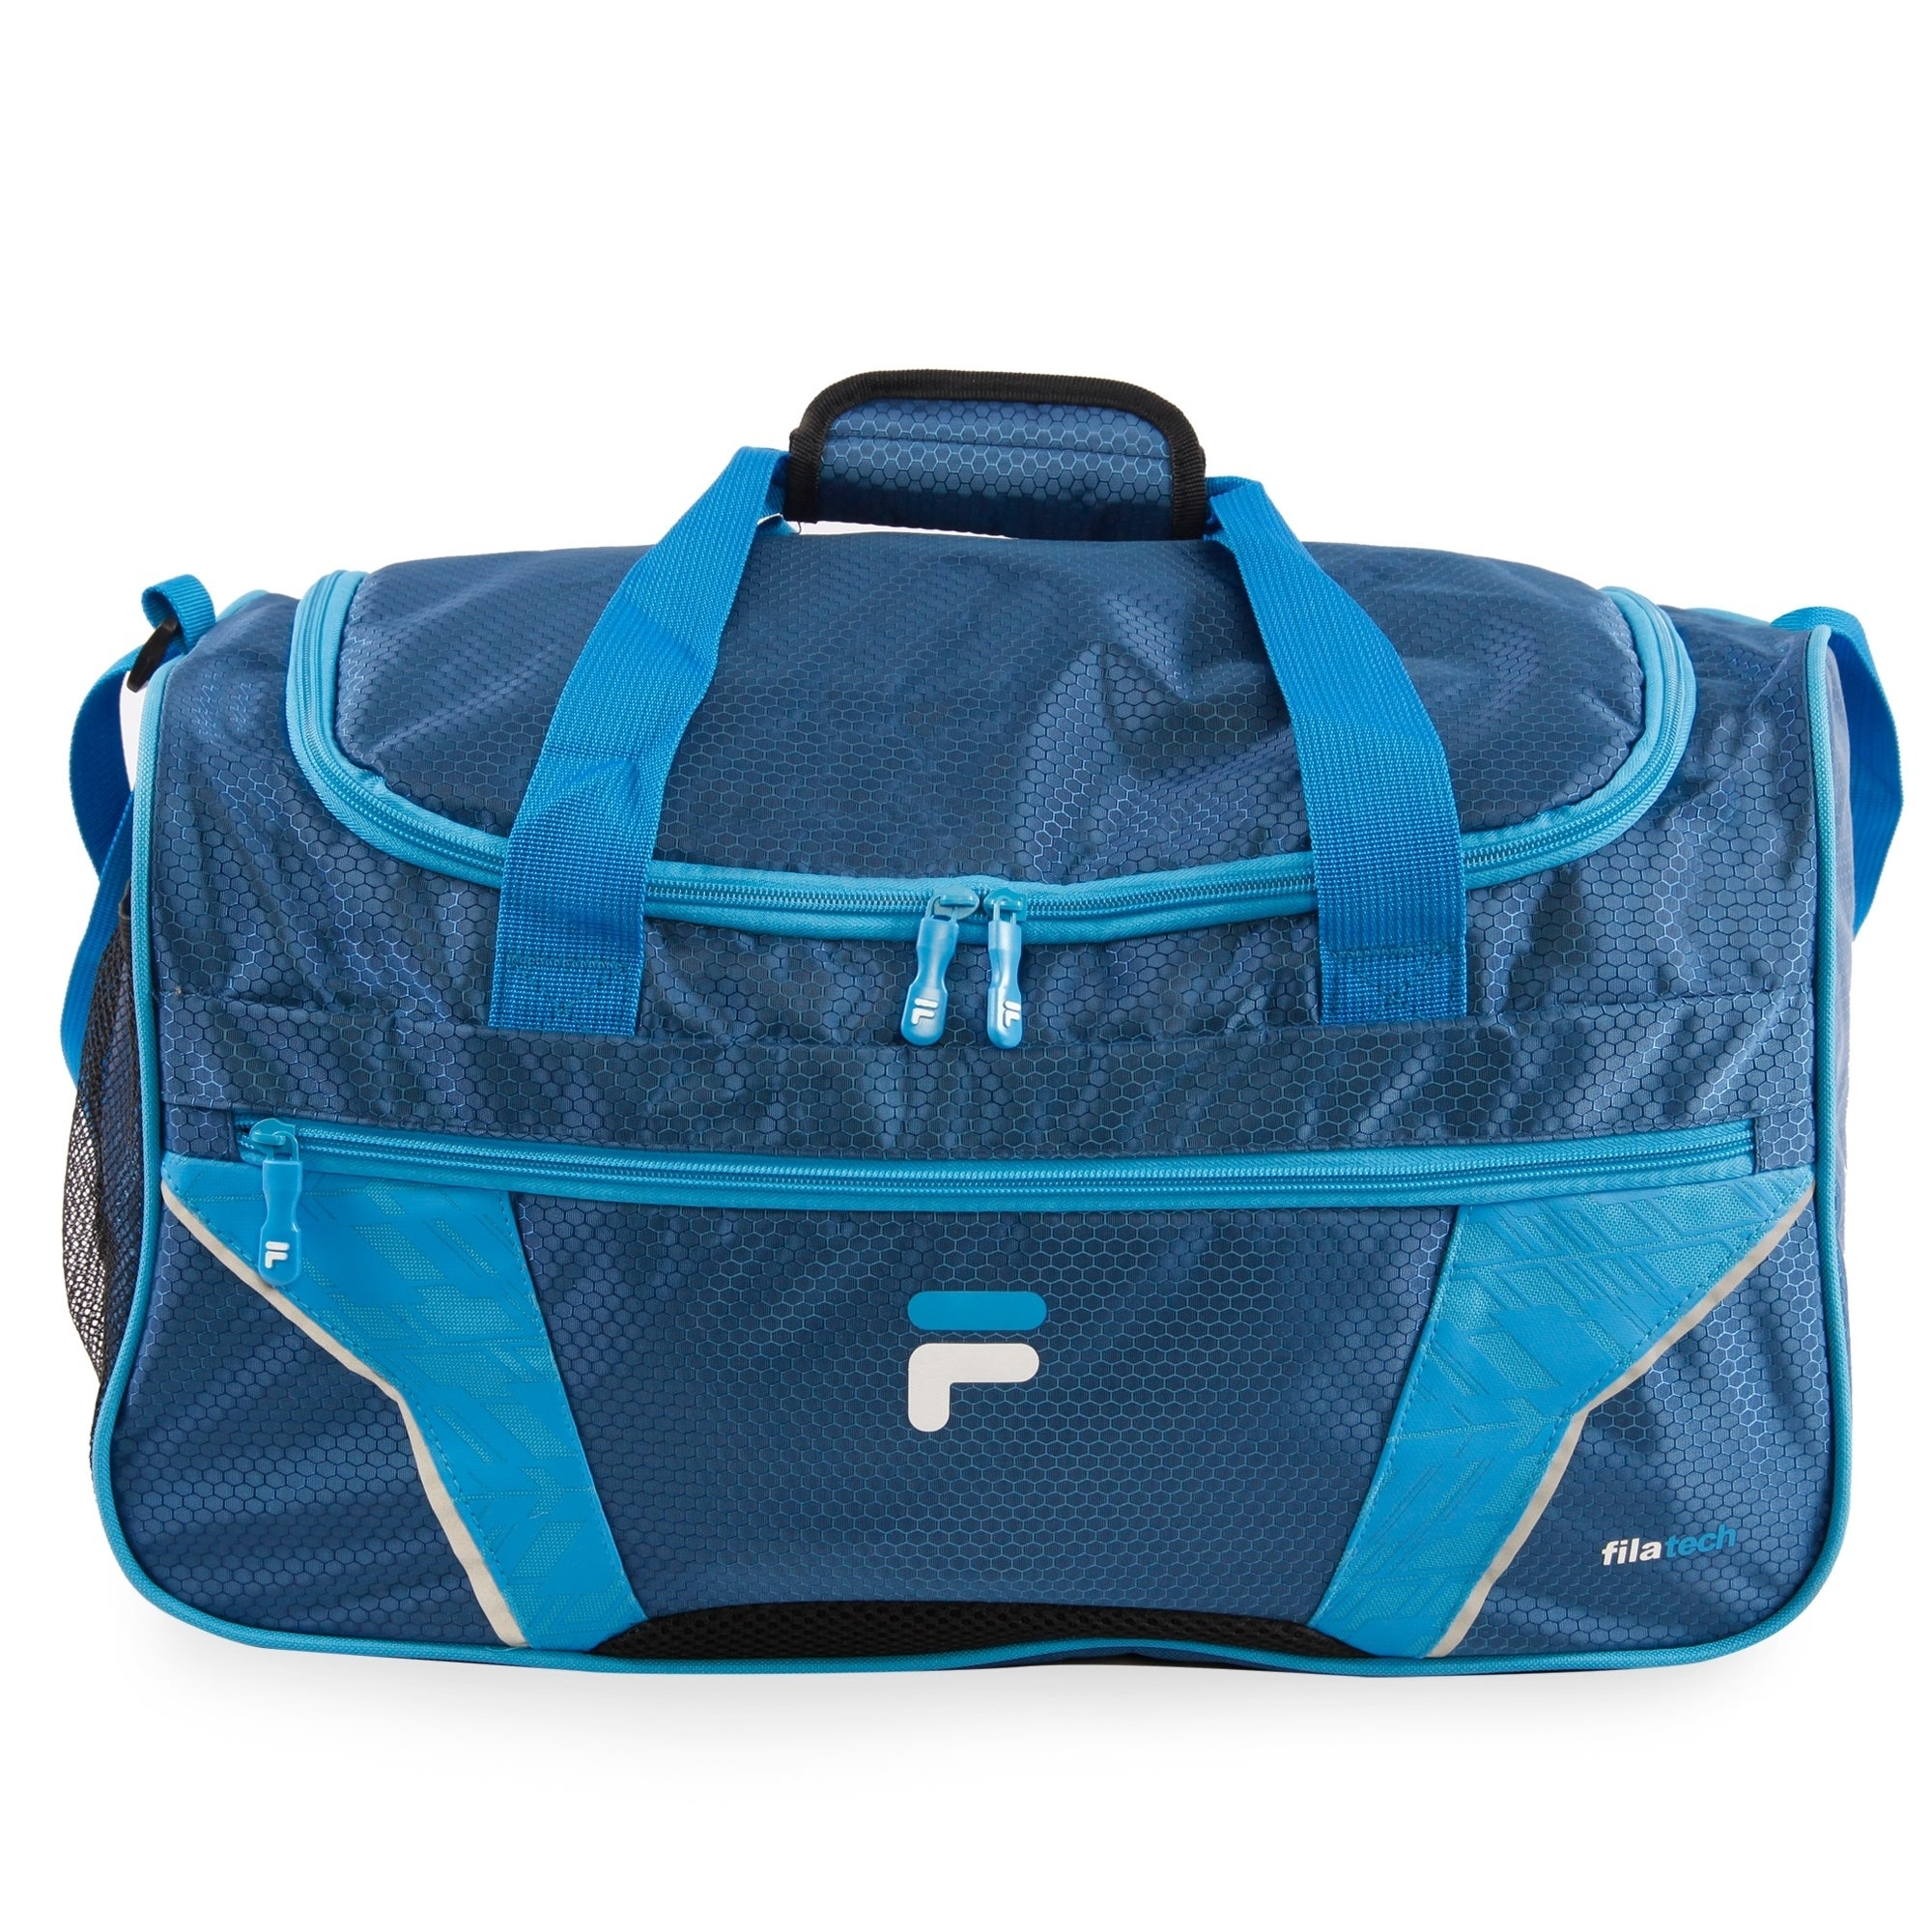 d4f66b410ad4 Shop Fila Drone Small Travel Gym Sport Duffel Bag - Free Shipping On Orders  Over  45 - Overstock - 12379204